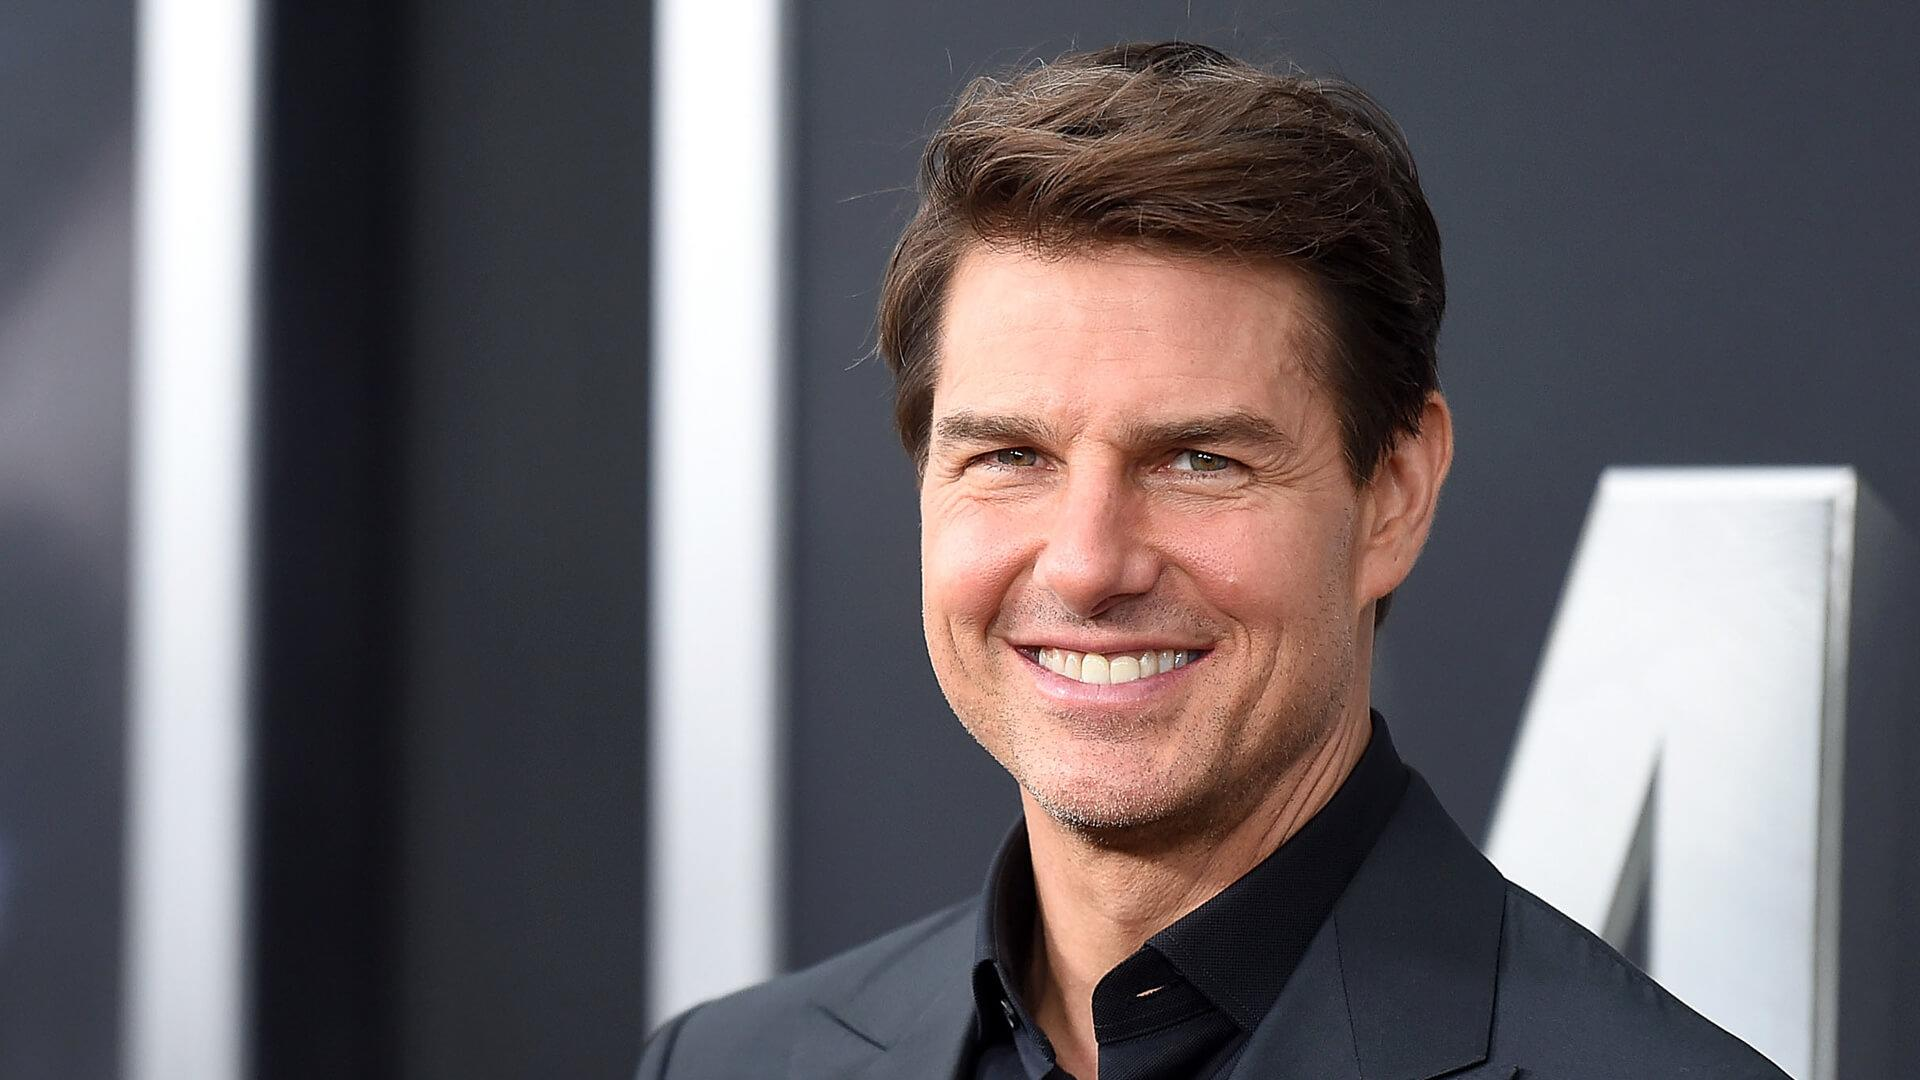 Tom Cruise Turns 59: How Much is the 'Mission: Impossible' Actor Worth?